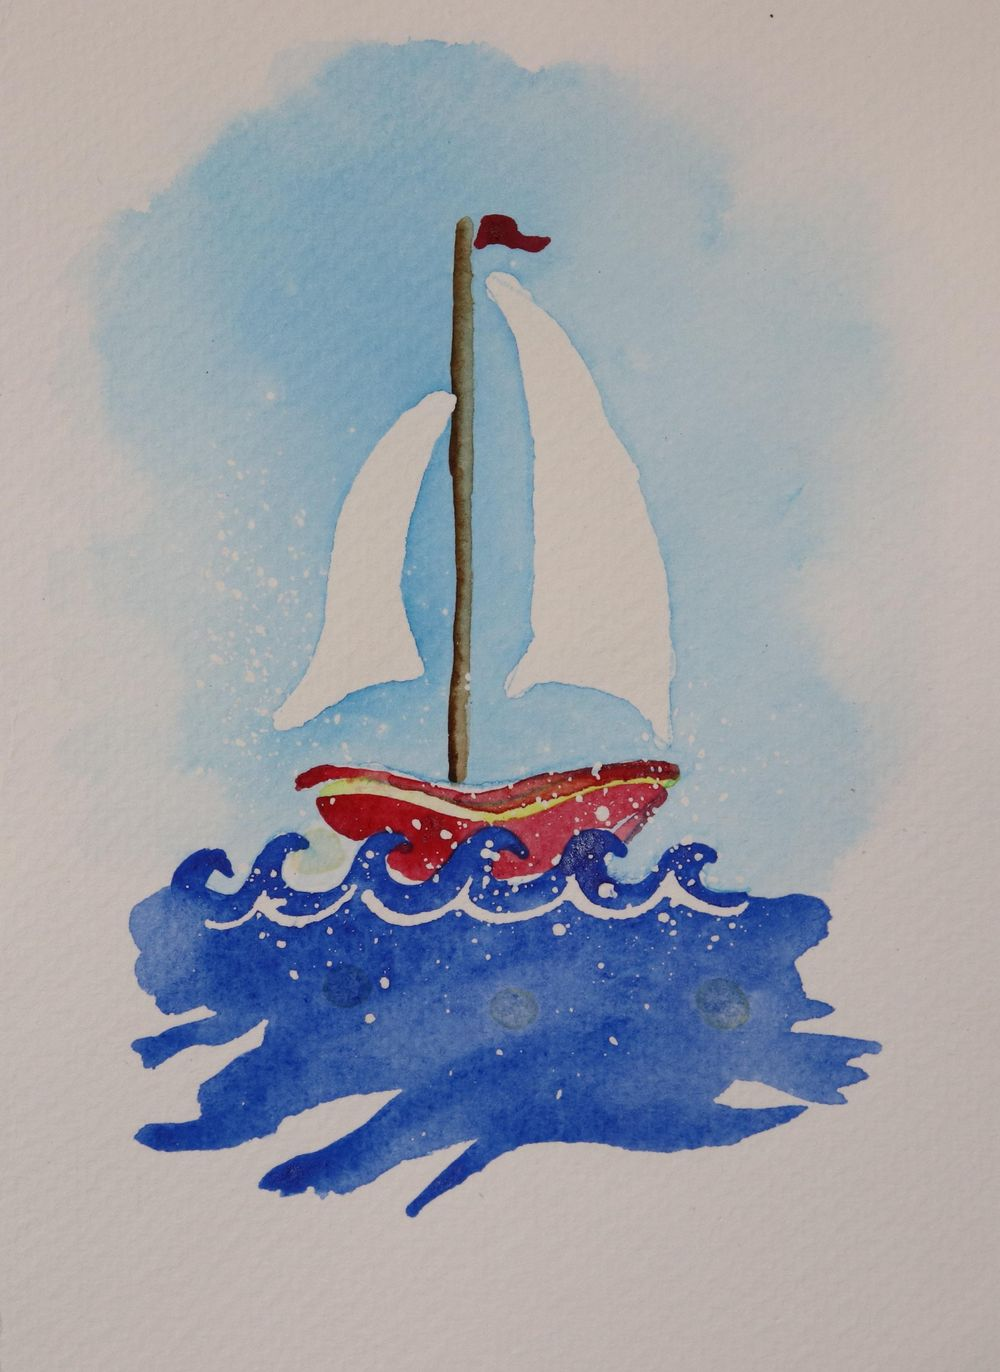 Rock Your Boat Greeting Card - image 1 - student project